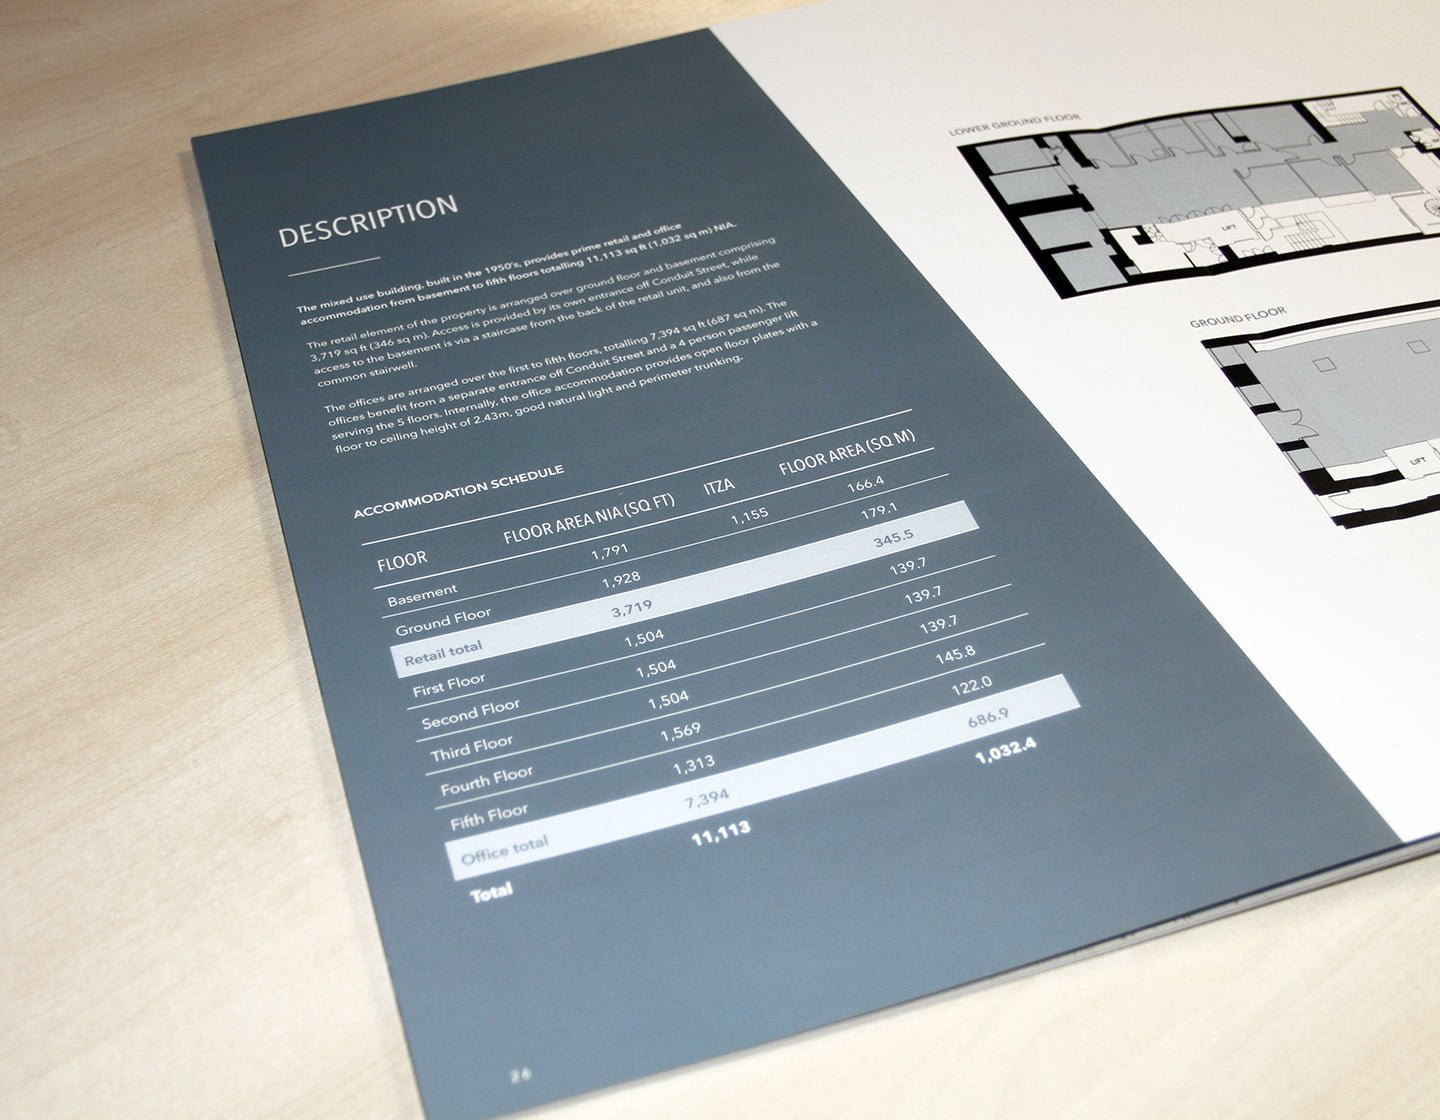 7 & 8 Conduit Street Floor Plans